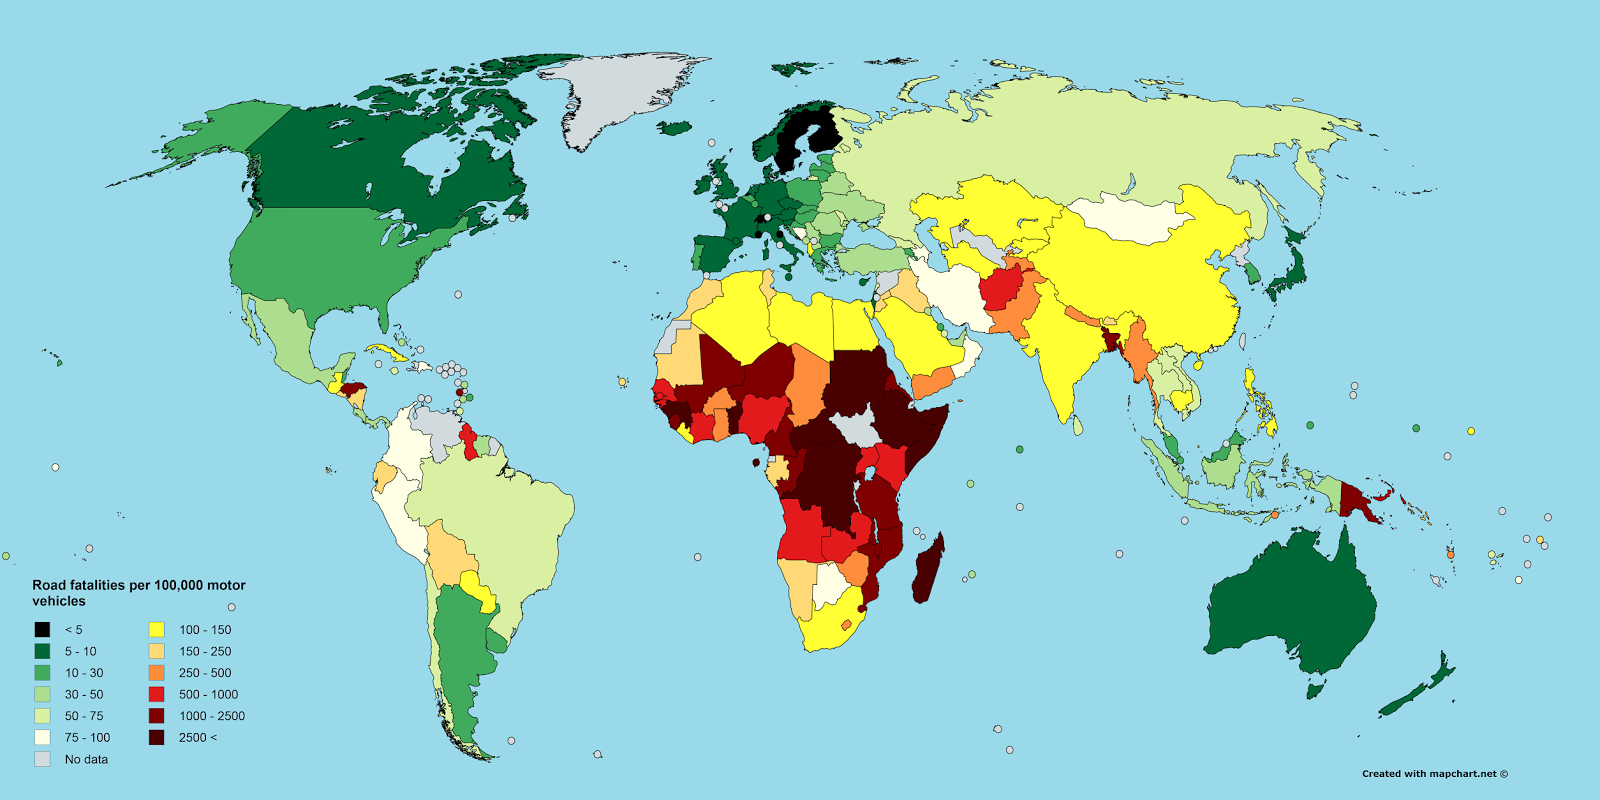 Road fatalities per 100,000 motor vehicles, 2013